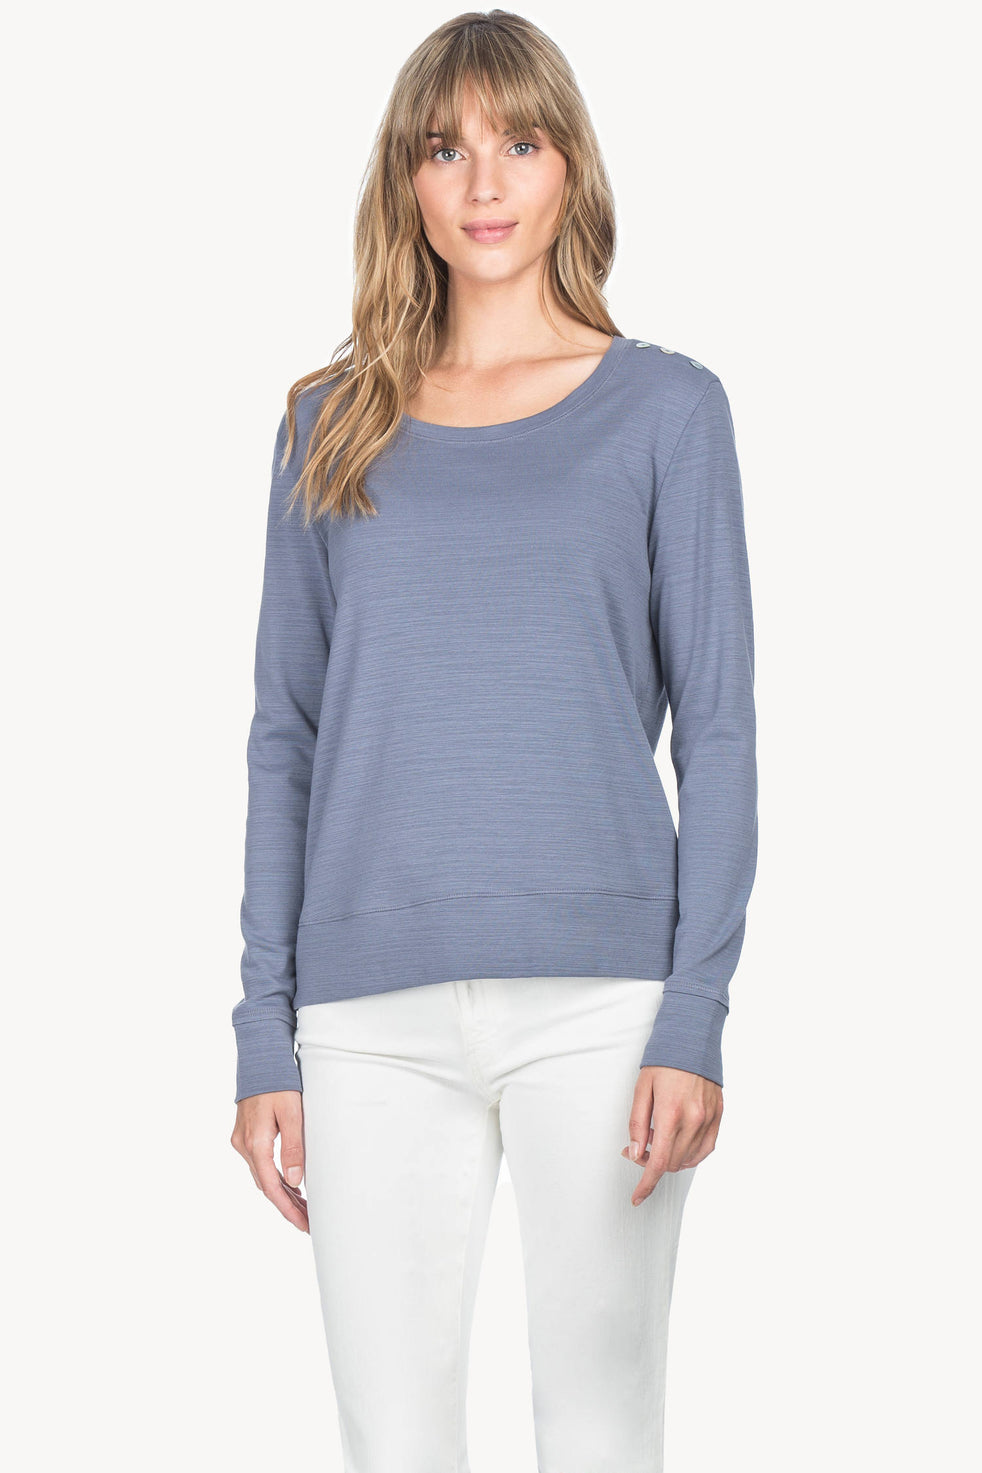 4baa0050fc9a64 Women s Sale Up to 60% Off